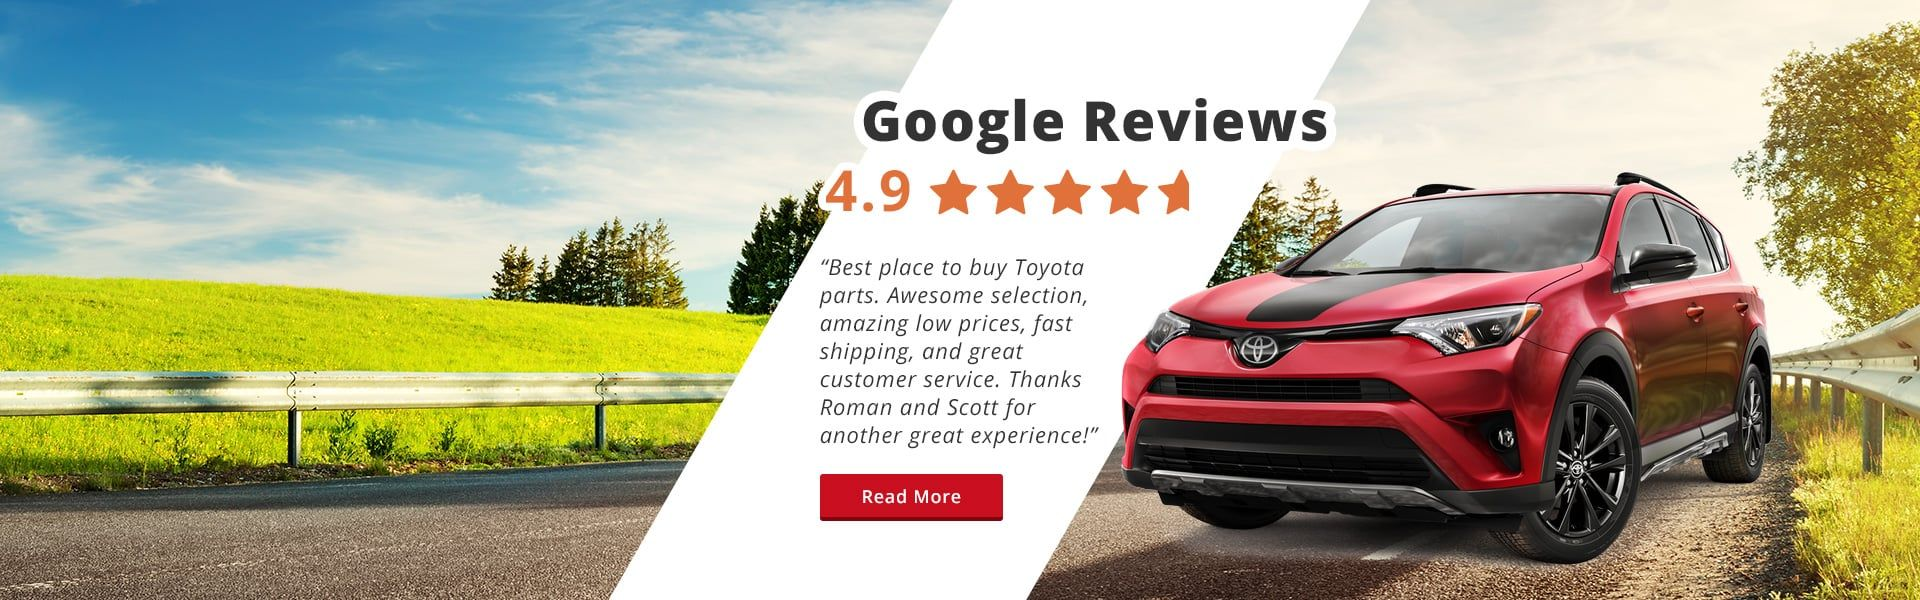 Google Reviews  - 4.9